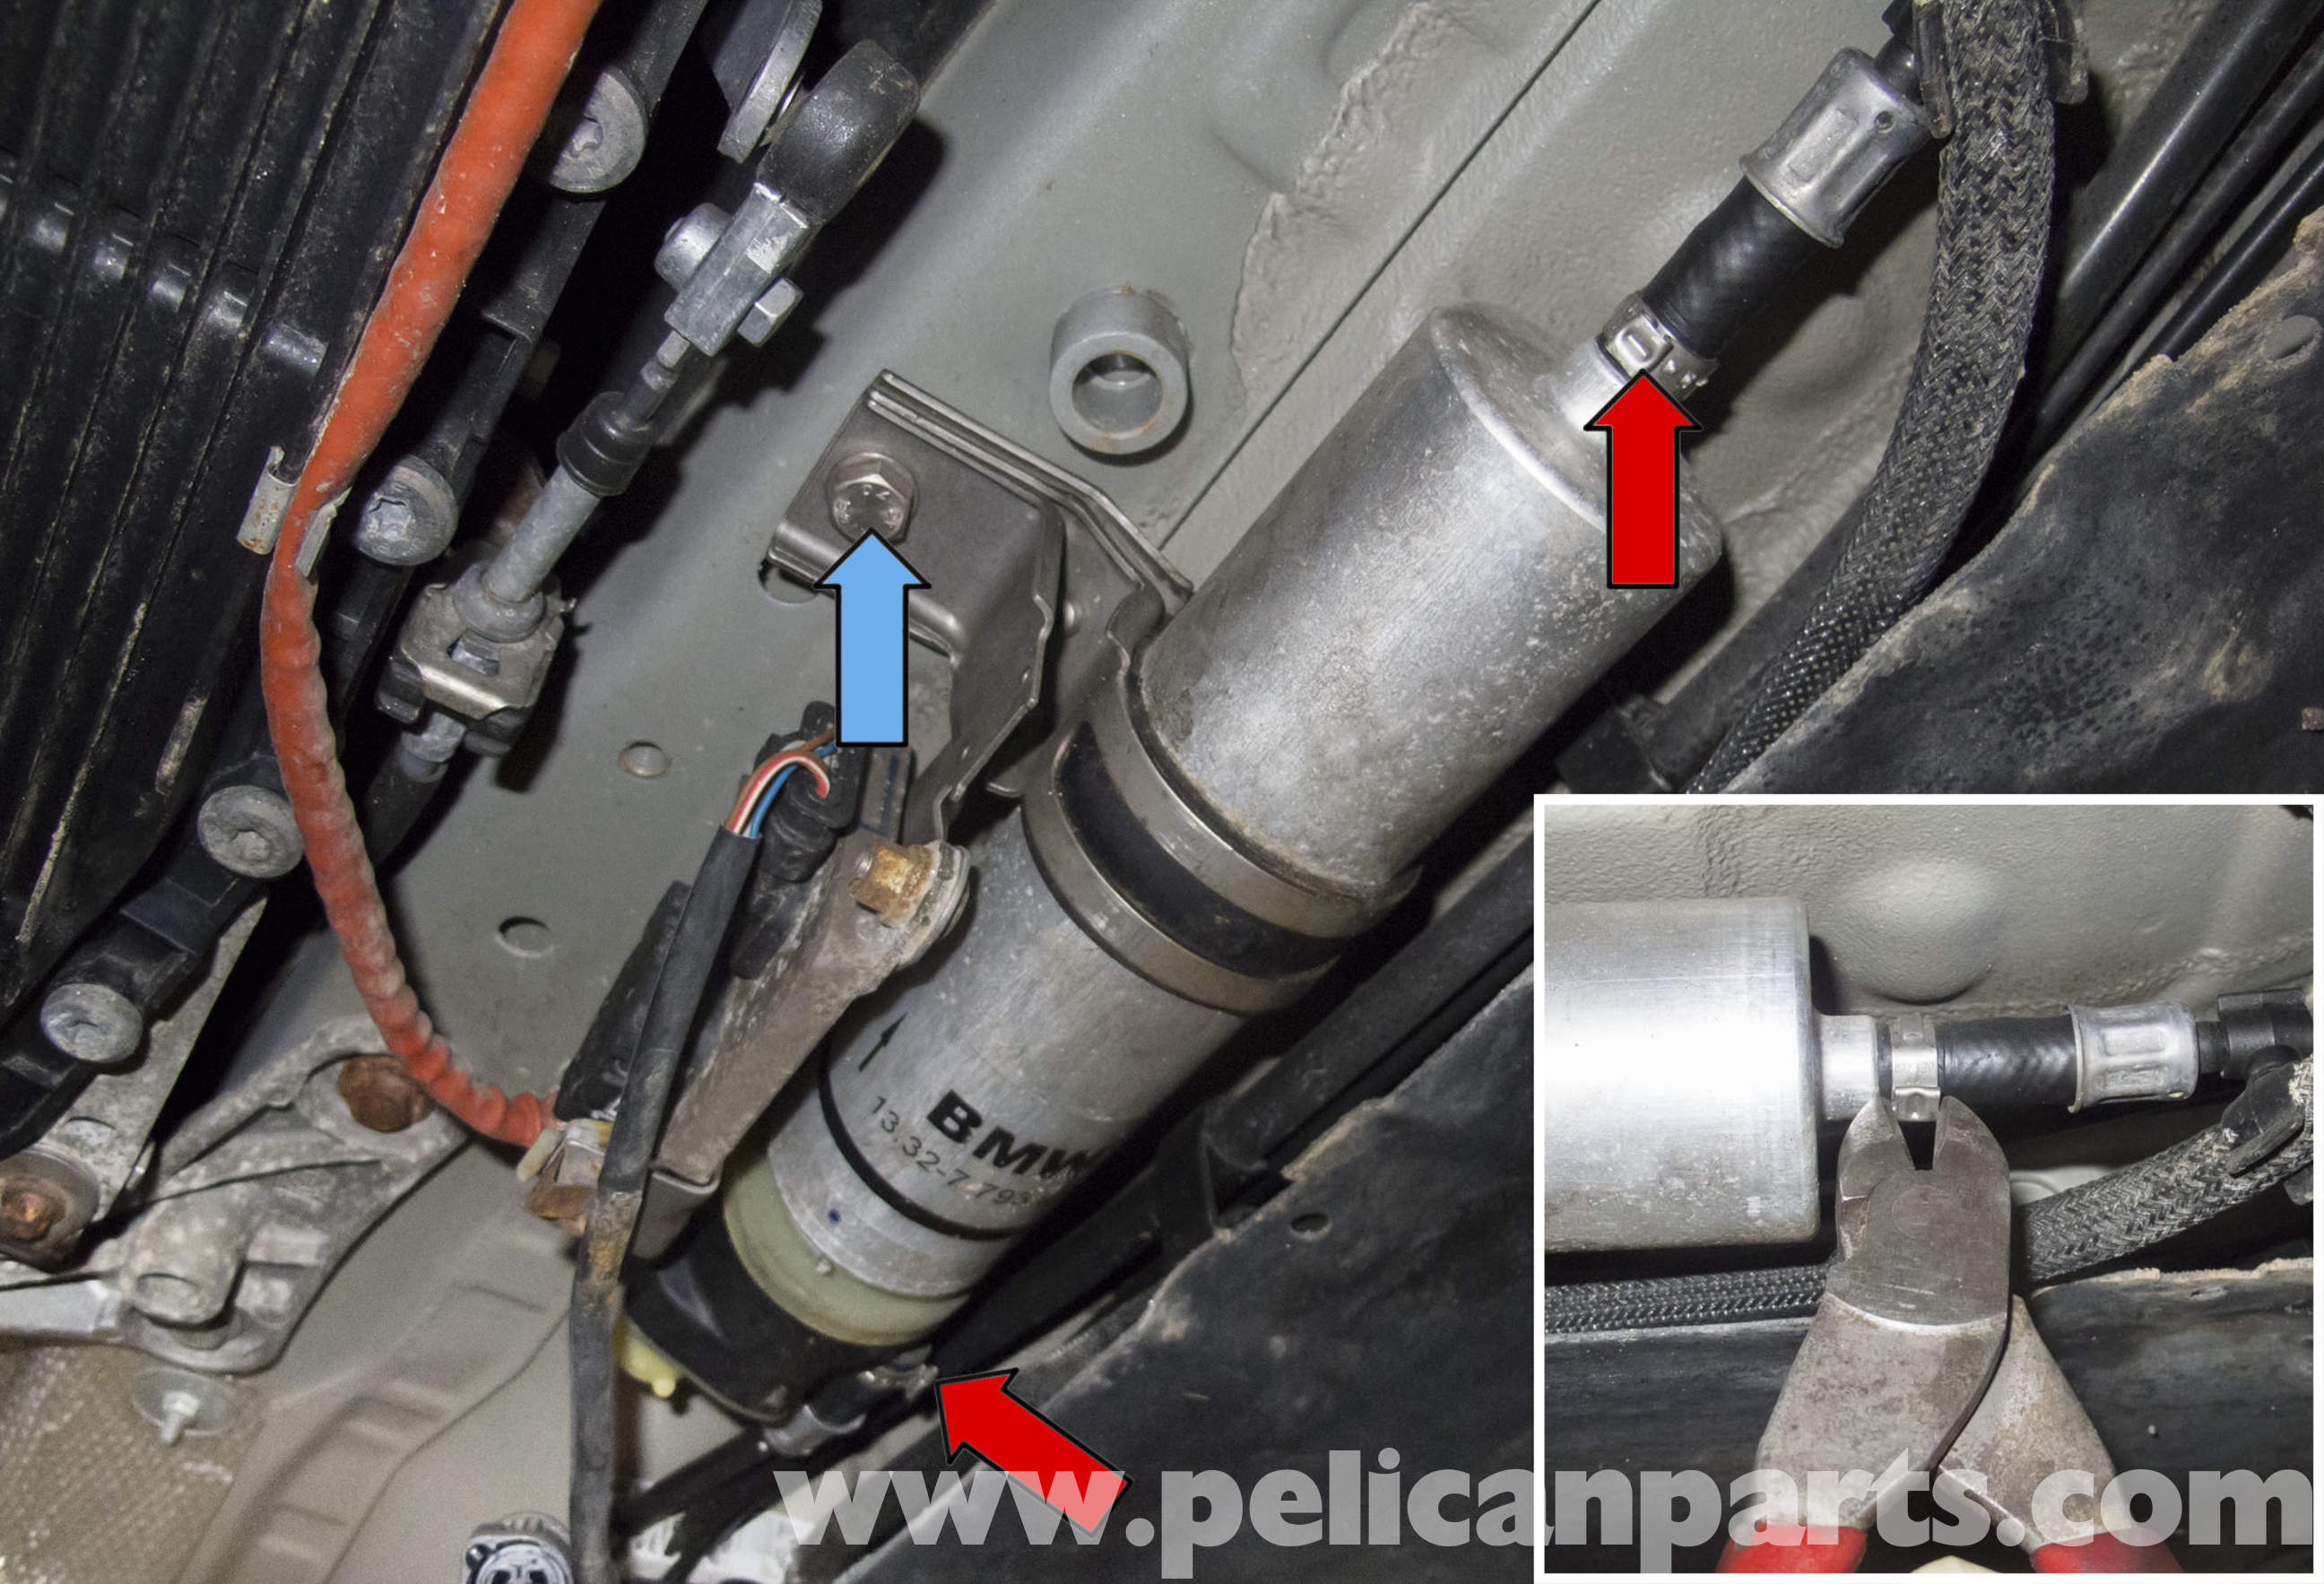 Pelican Technical Article Bmw E90 Diesel Engine Fuel Filter